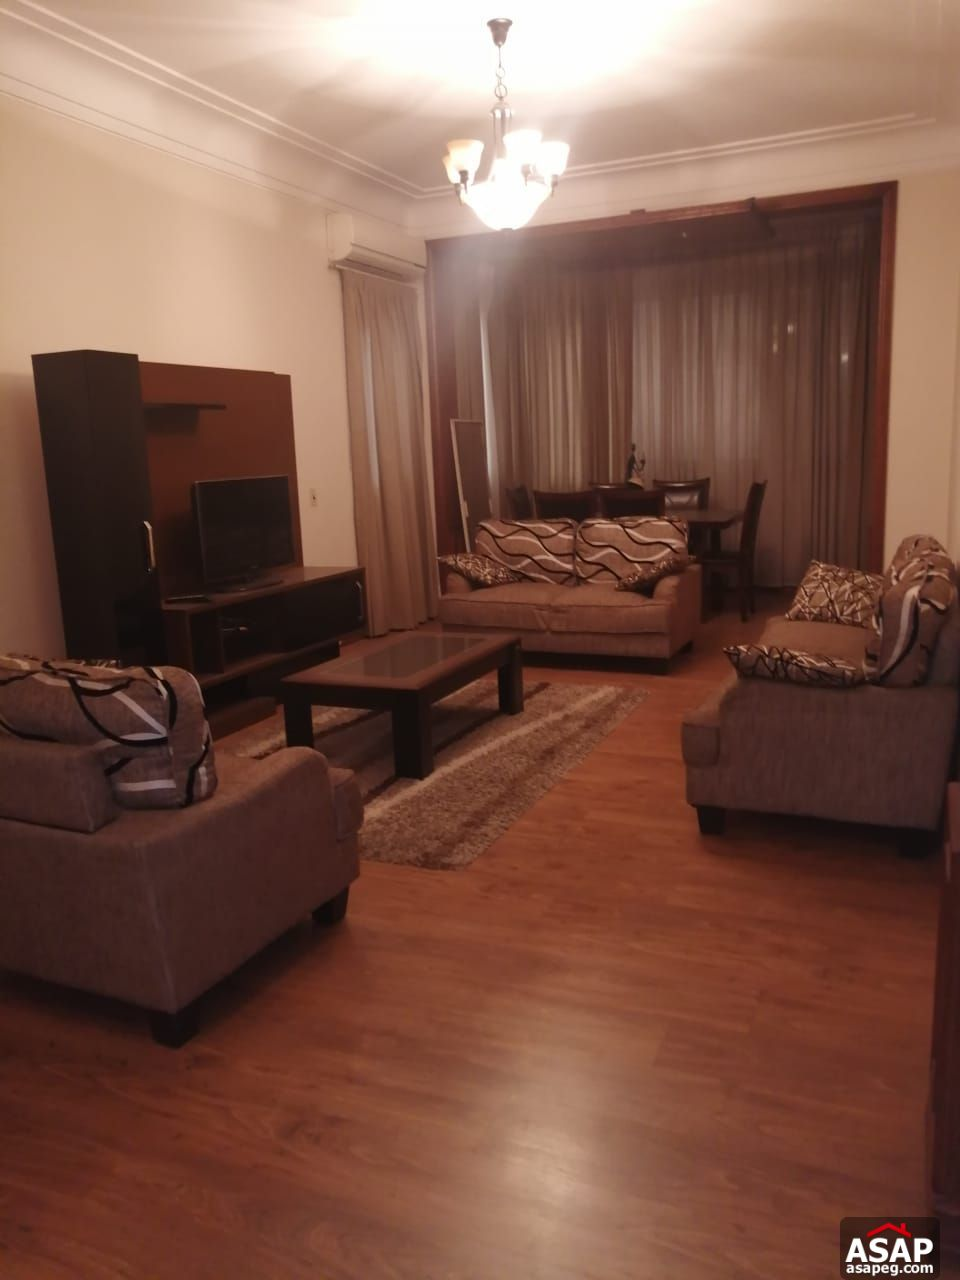 Property for Rent in Zamalek